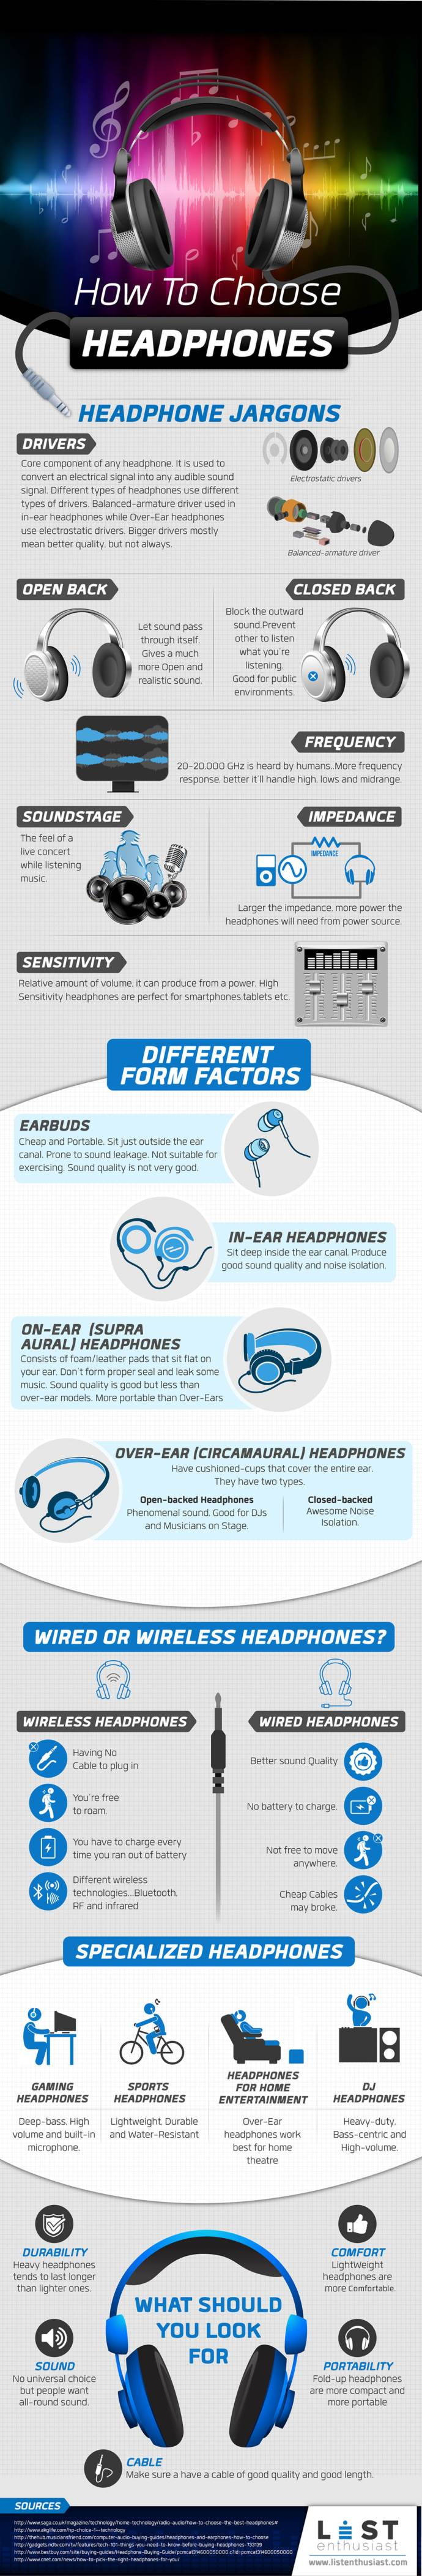 Blog: How to choose headphones – A Guest Article